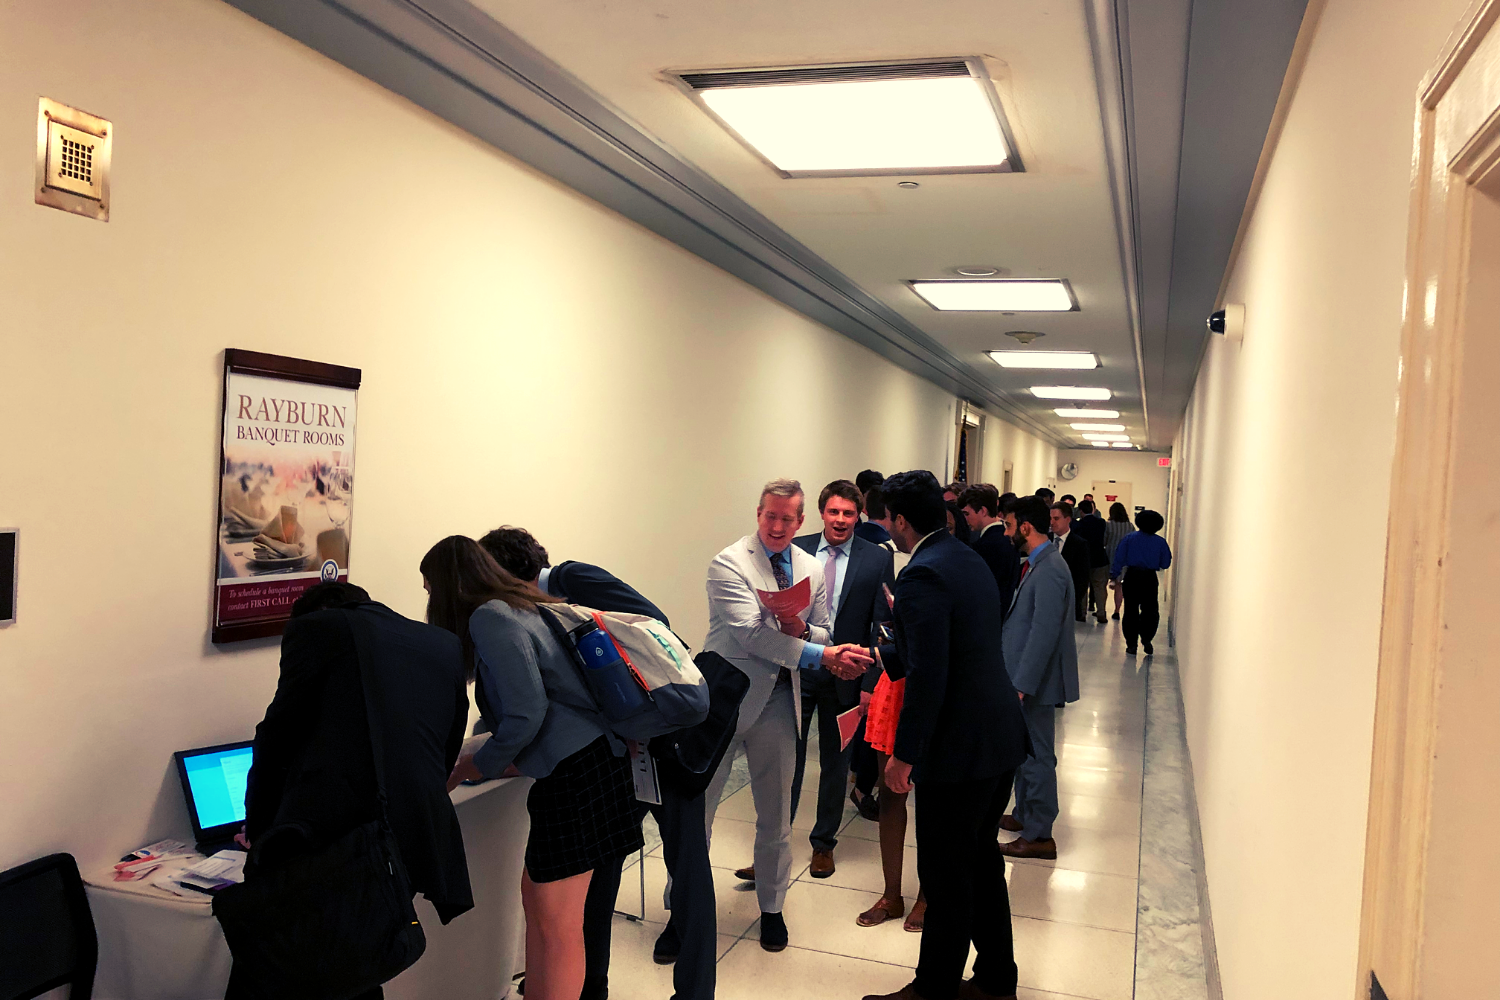 The line to attend our Congressional briefing stretched all the way down the hallway.